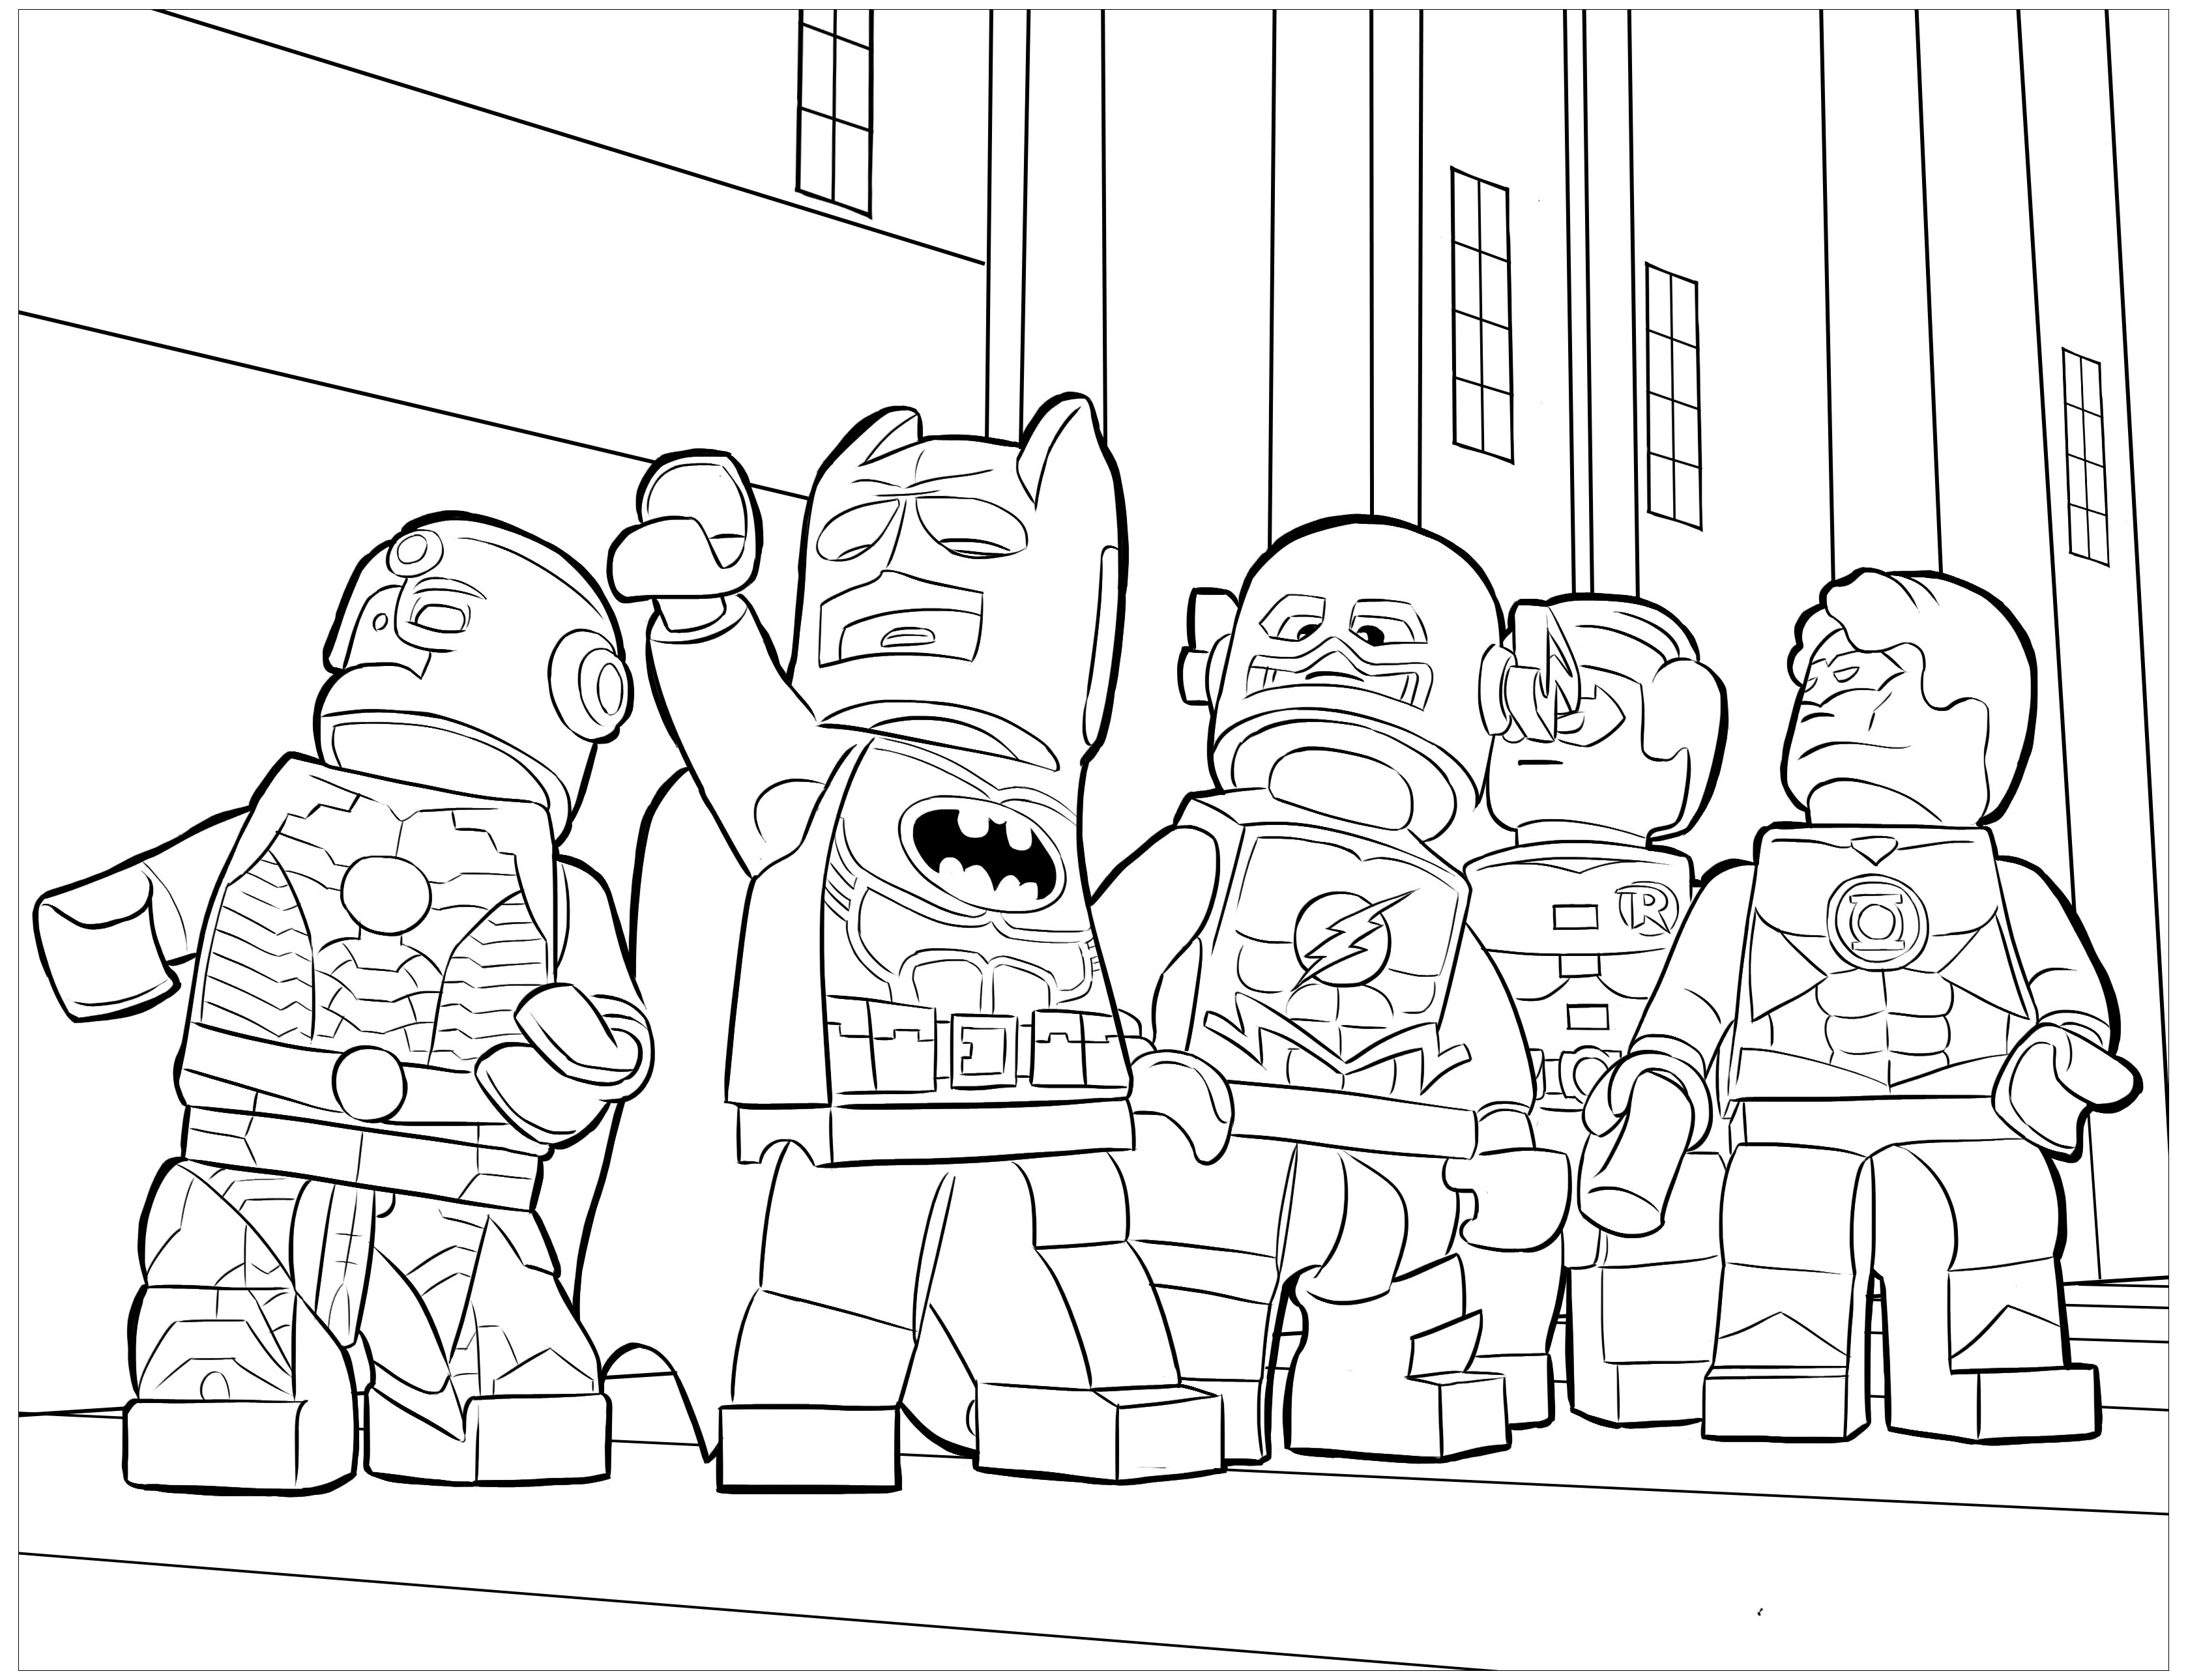 Free Lego Batman coloring page to print and color